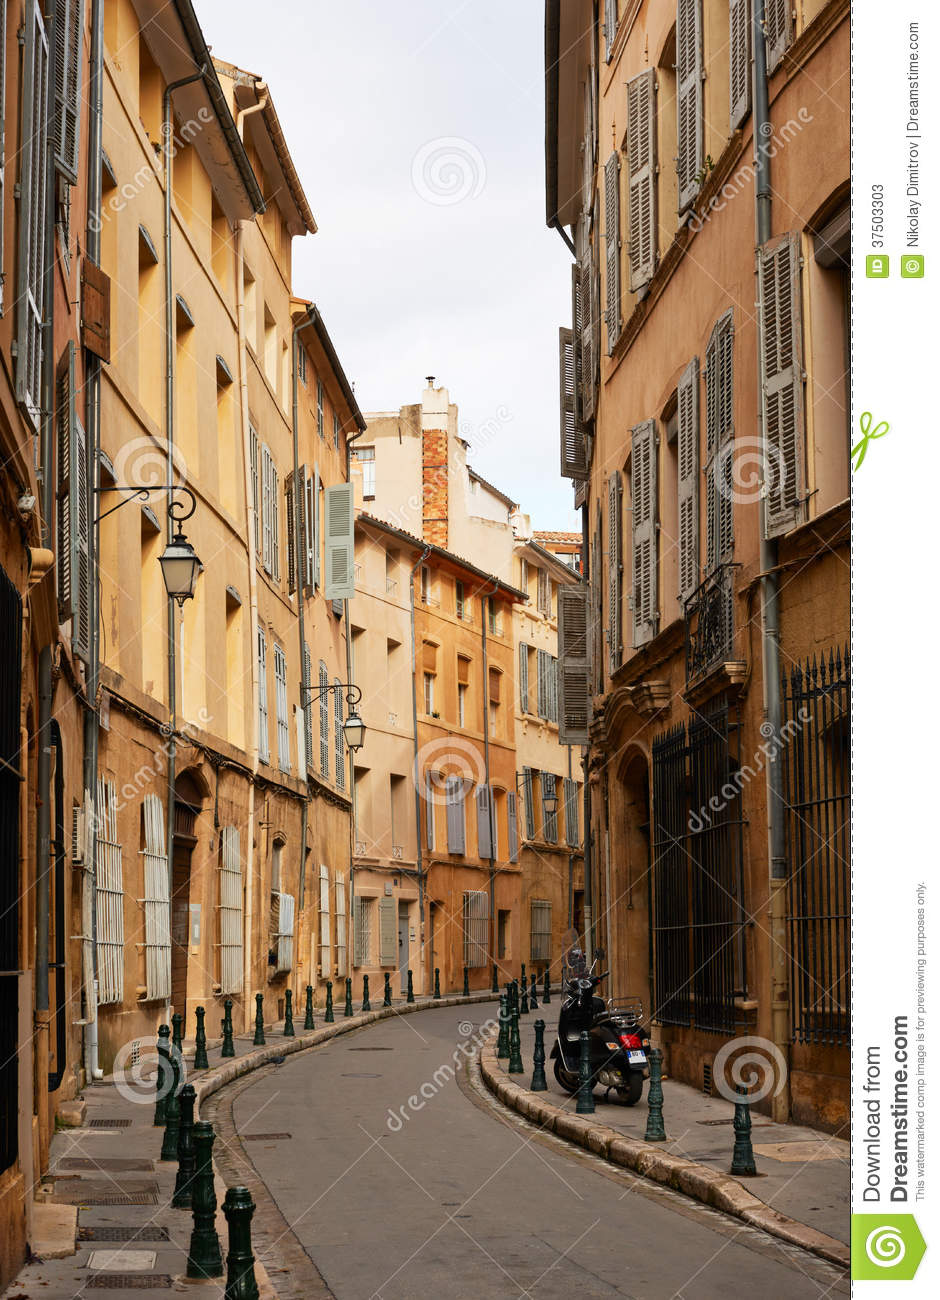 rue dans aix en provence photos stock image 37503303. Black Bedroom Furniture Sets. Home Design Ideas